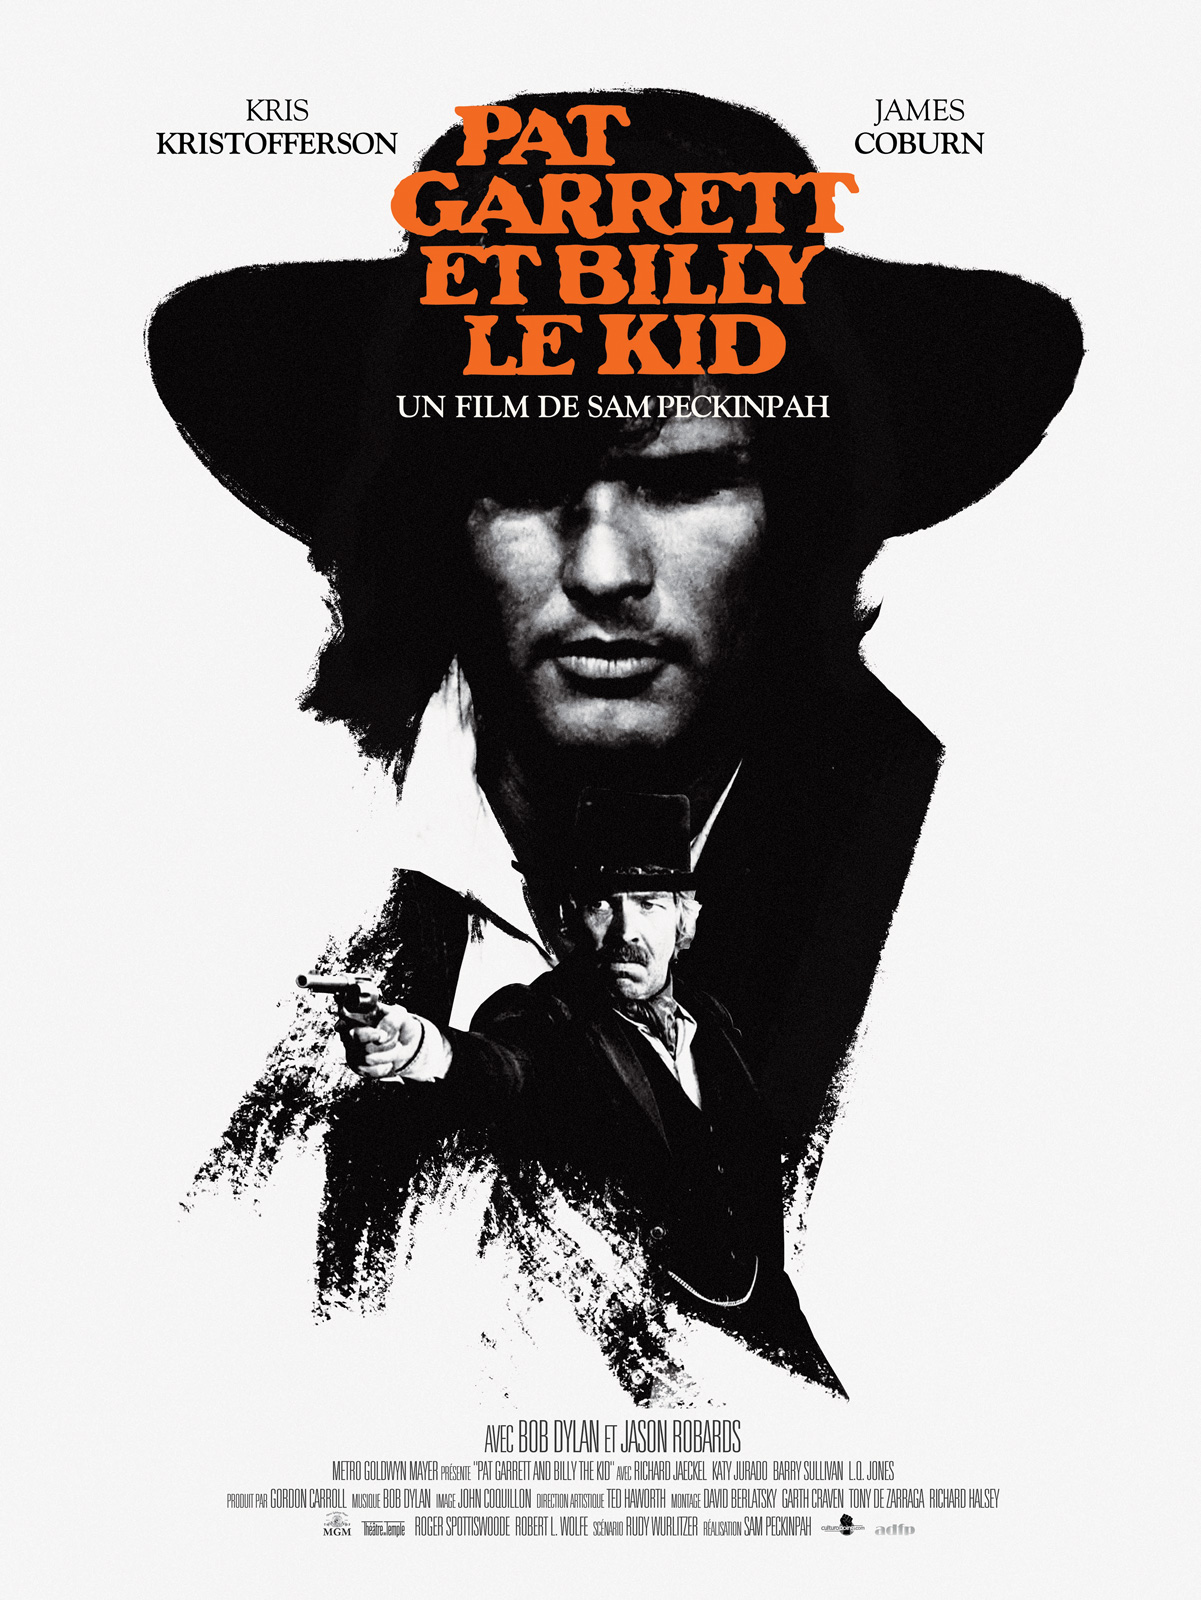 telecharger Pat Garrett et Billy le Kid BDRIP WEBRip